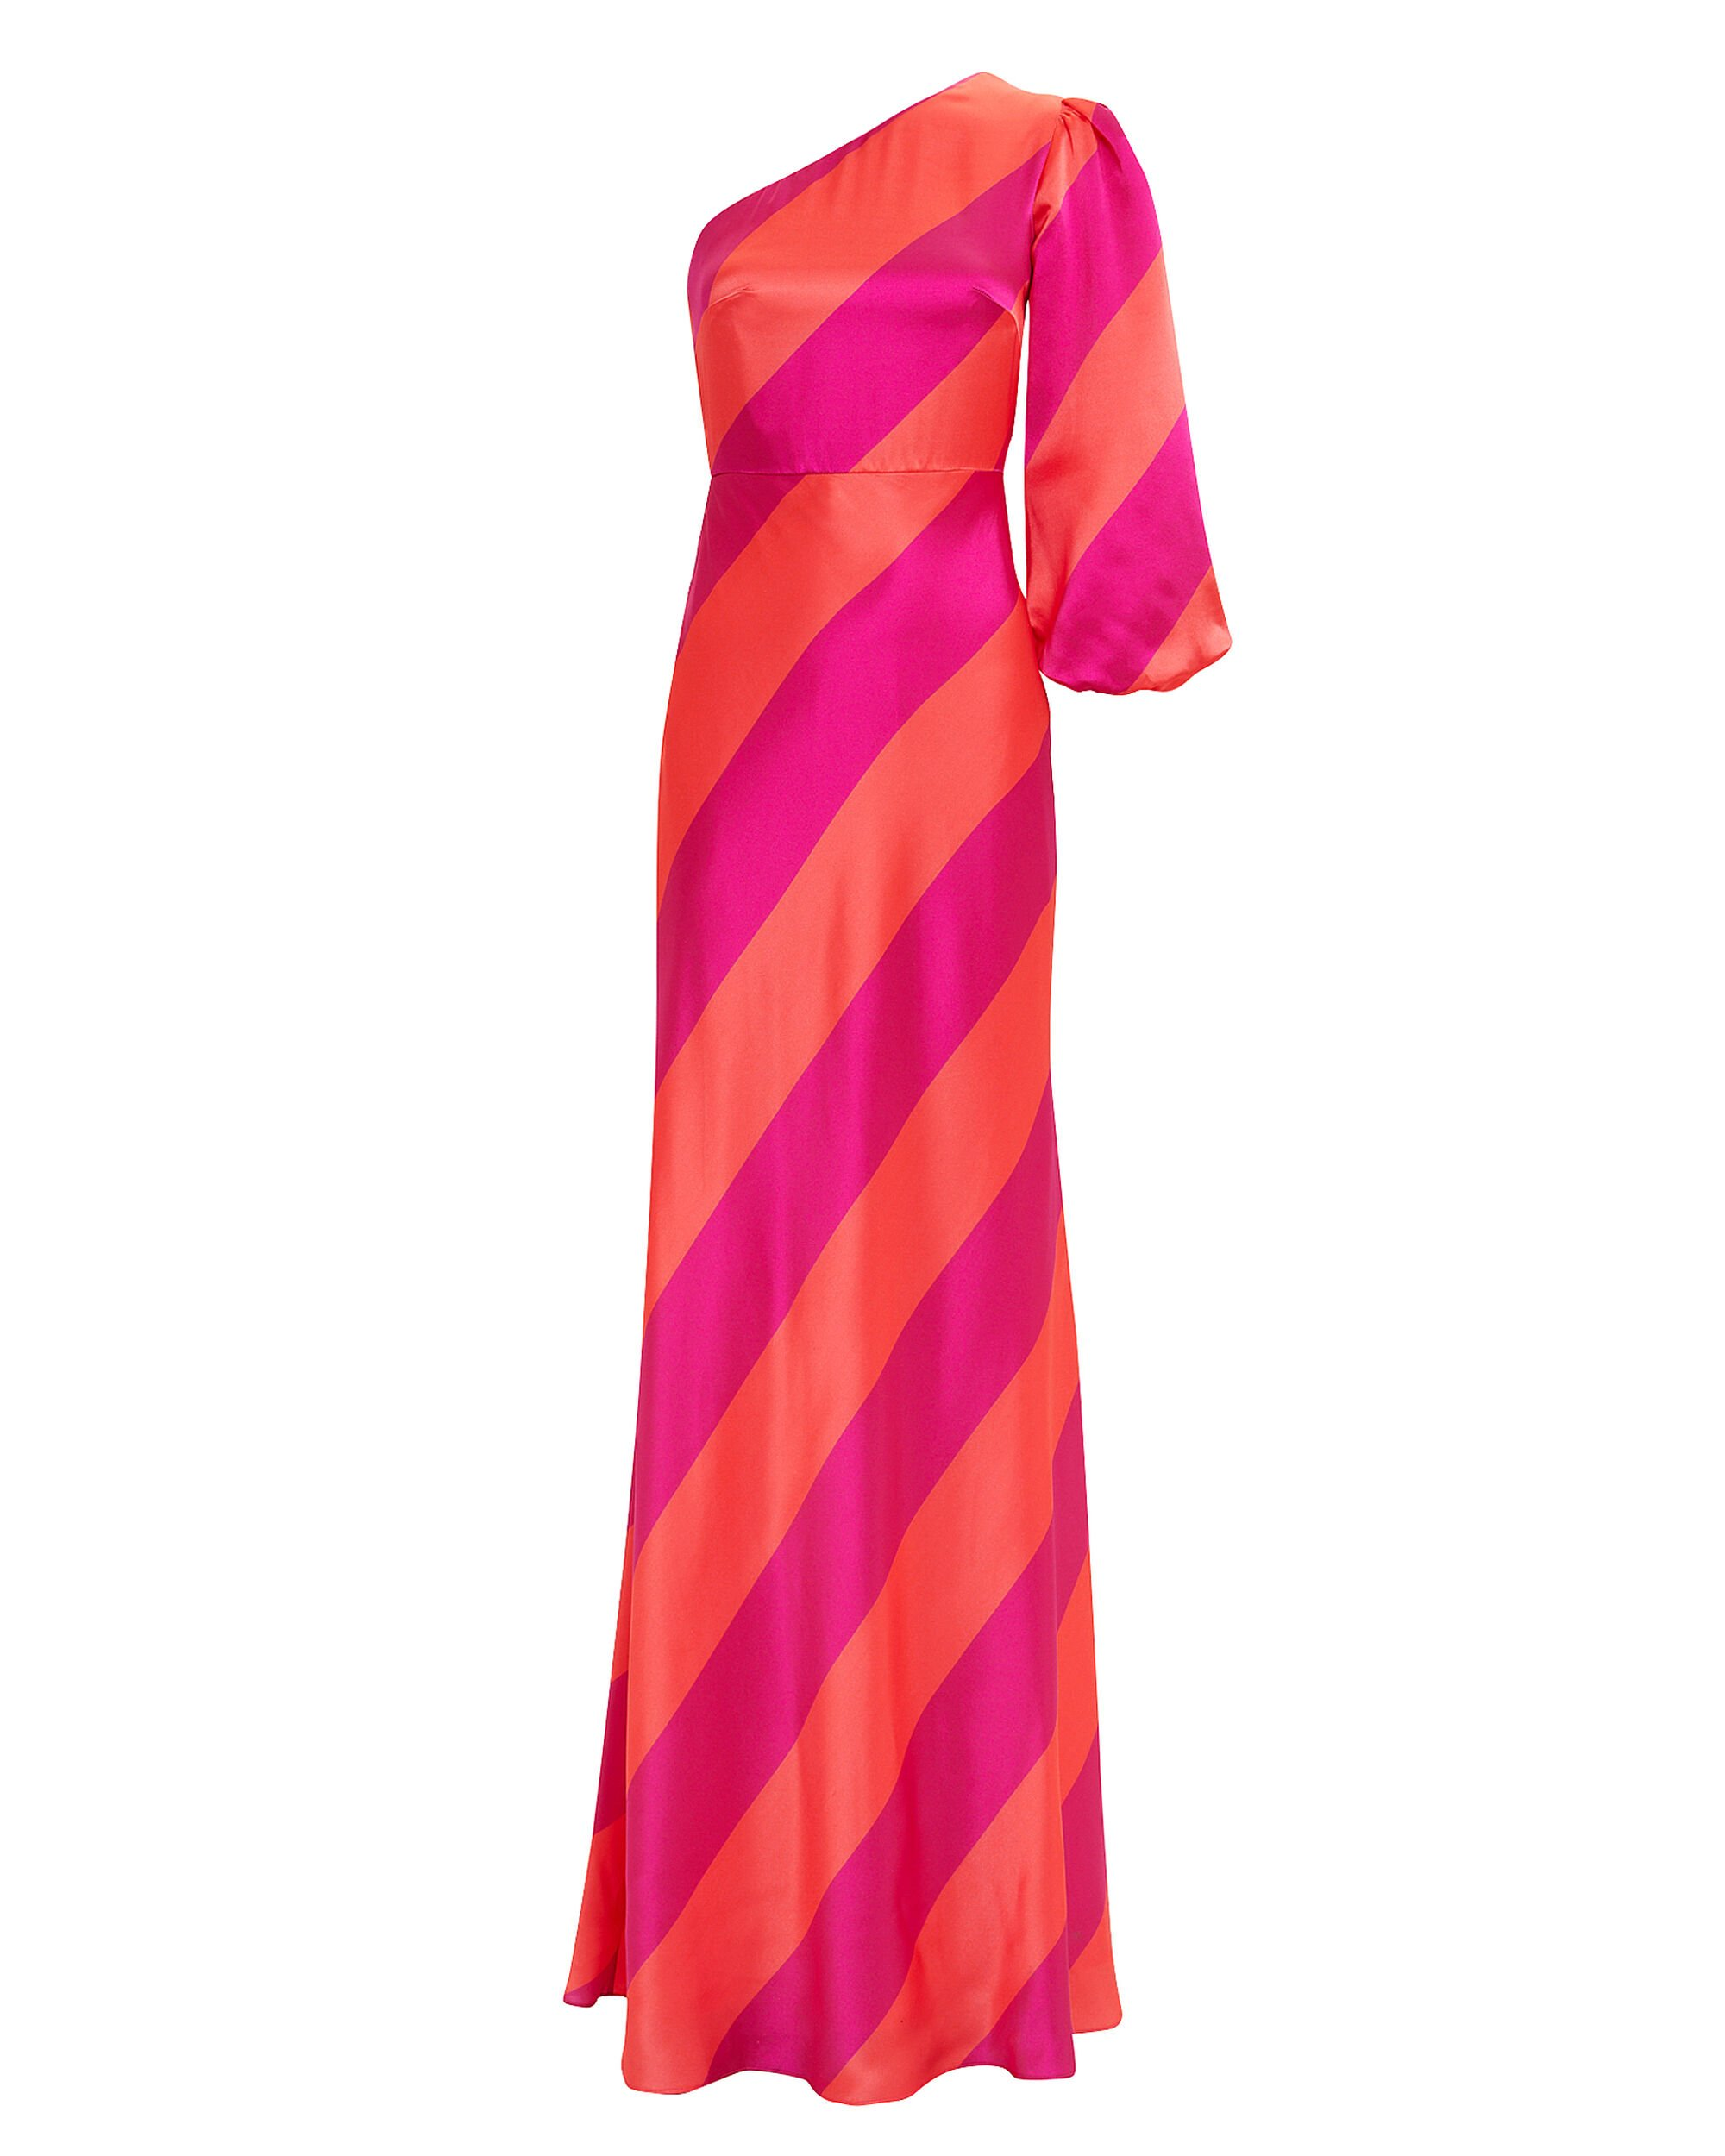 Lily One Shoulder Striped Gown, PINK/ORANGE, hi-res